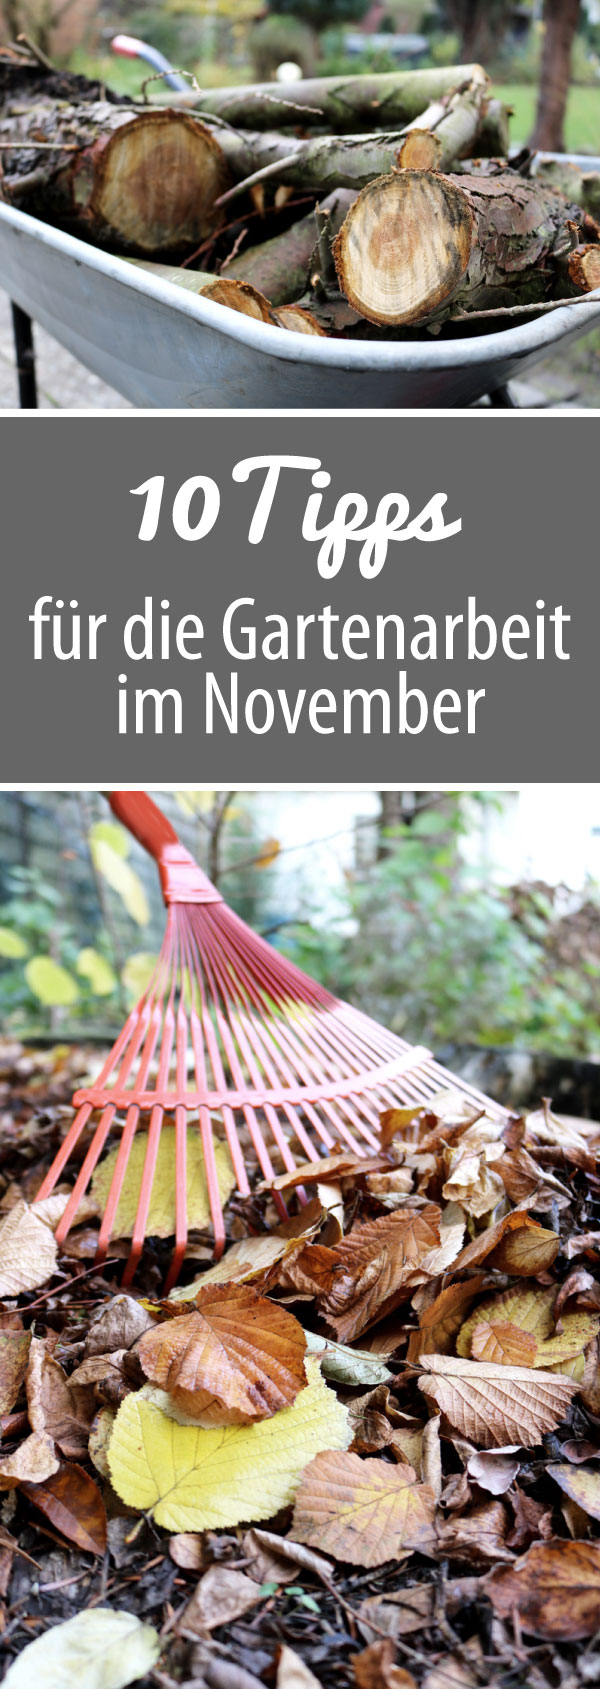 10 tipps f r die gartenarbeit im november endspurt im gartenjahr gr neliebe. Black Bedroom Furniture Sets. Home Design Ideas